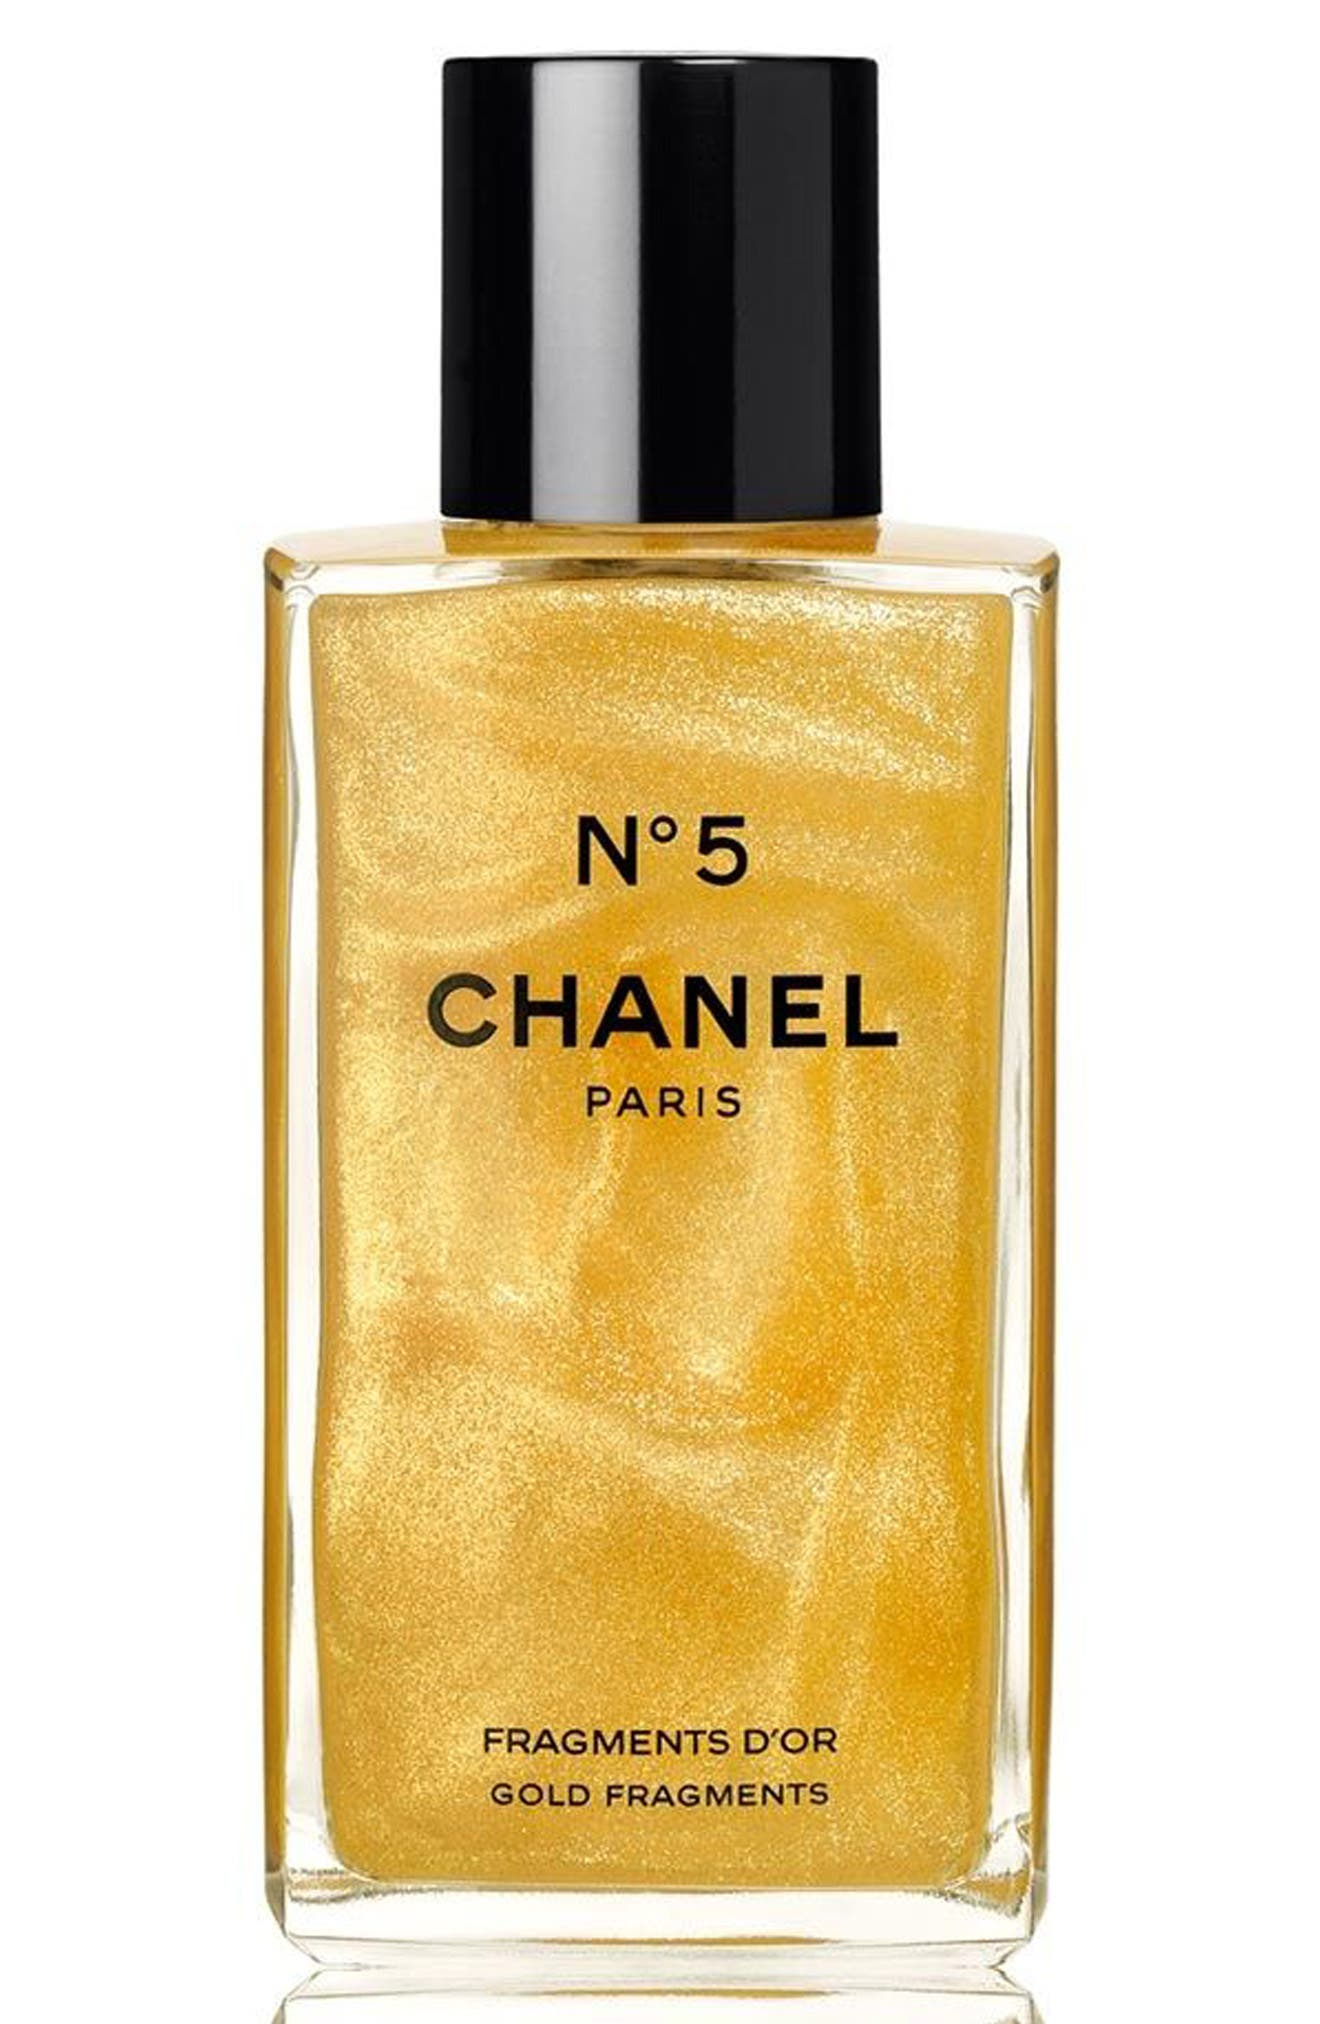 CHANEL N°5 GOLD FRAGMENTS Shimmering Gel